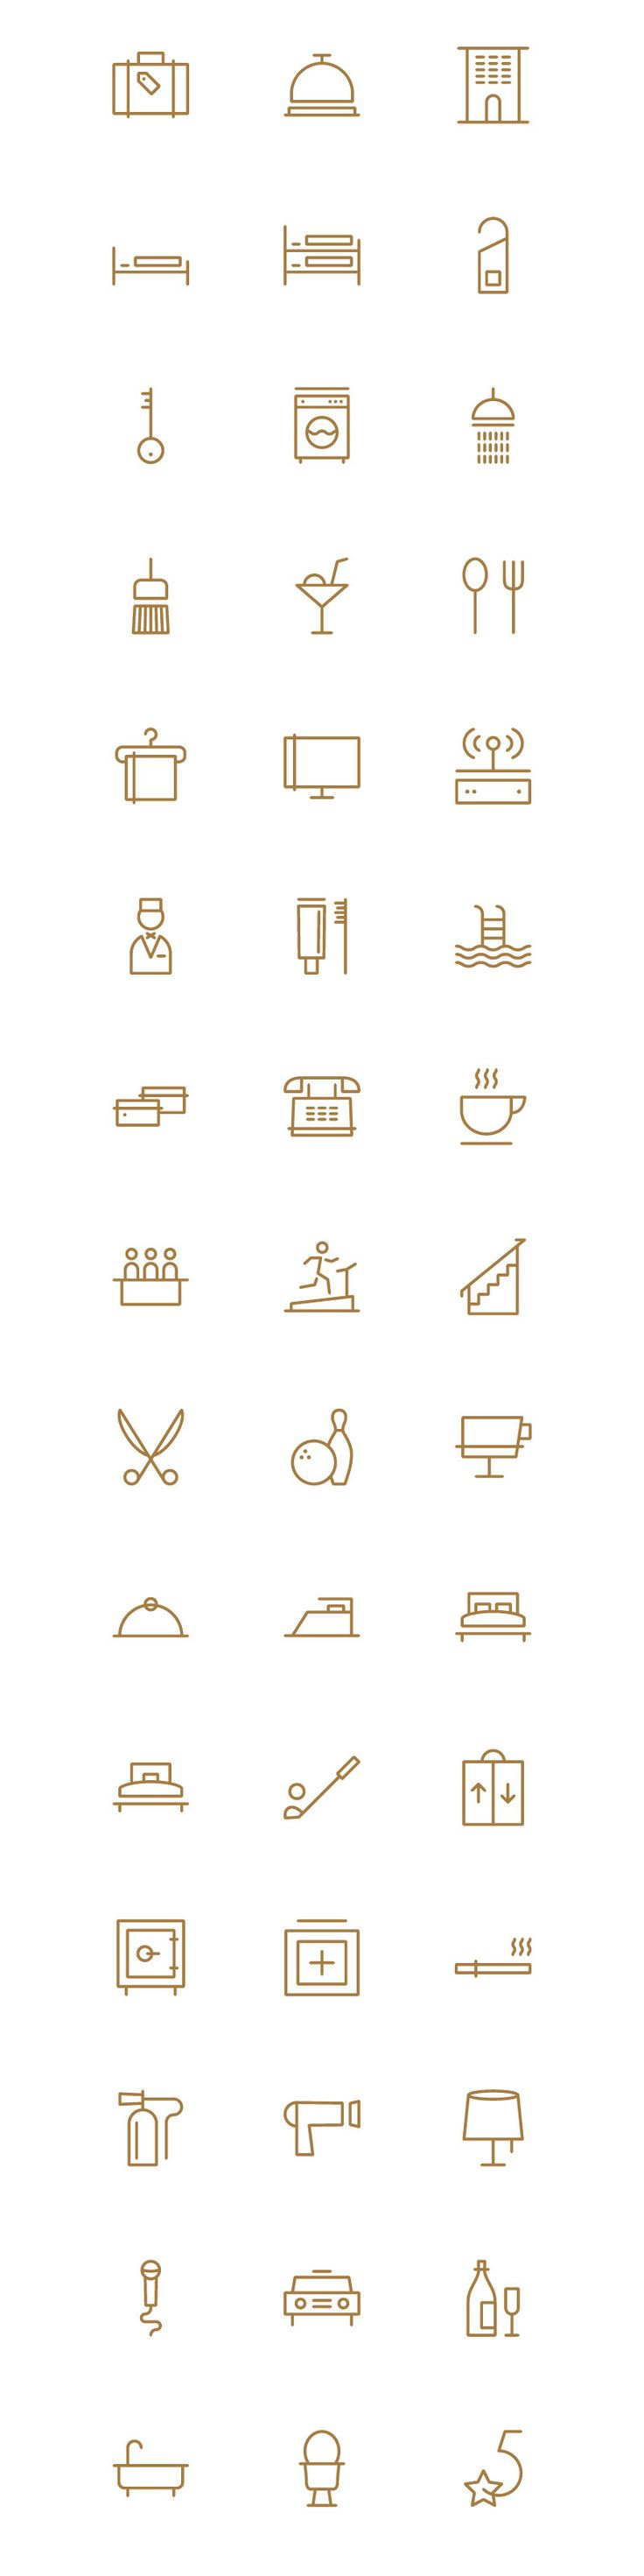 https://www.behance.net/gallery/26222203/Hotel-Theme-Icons